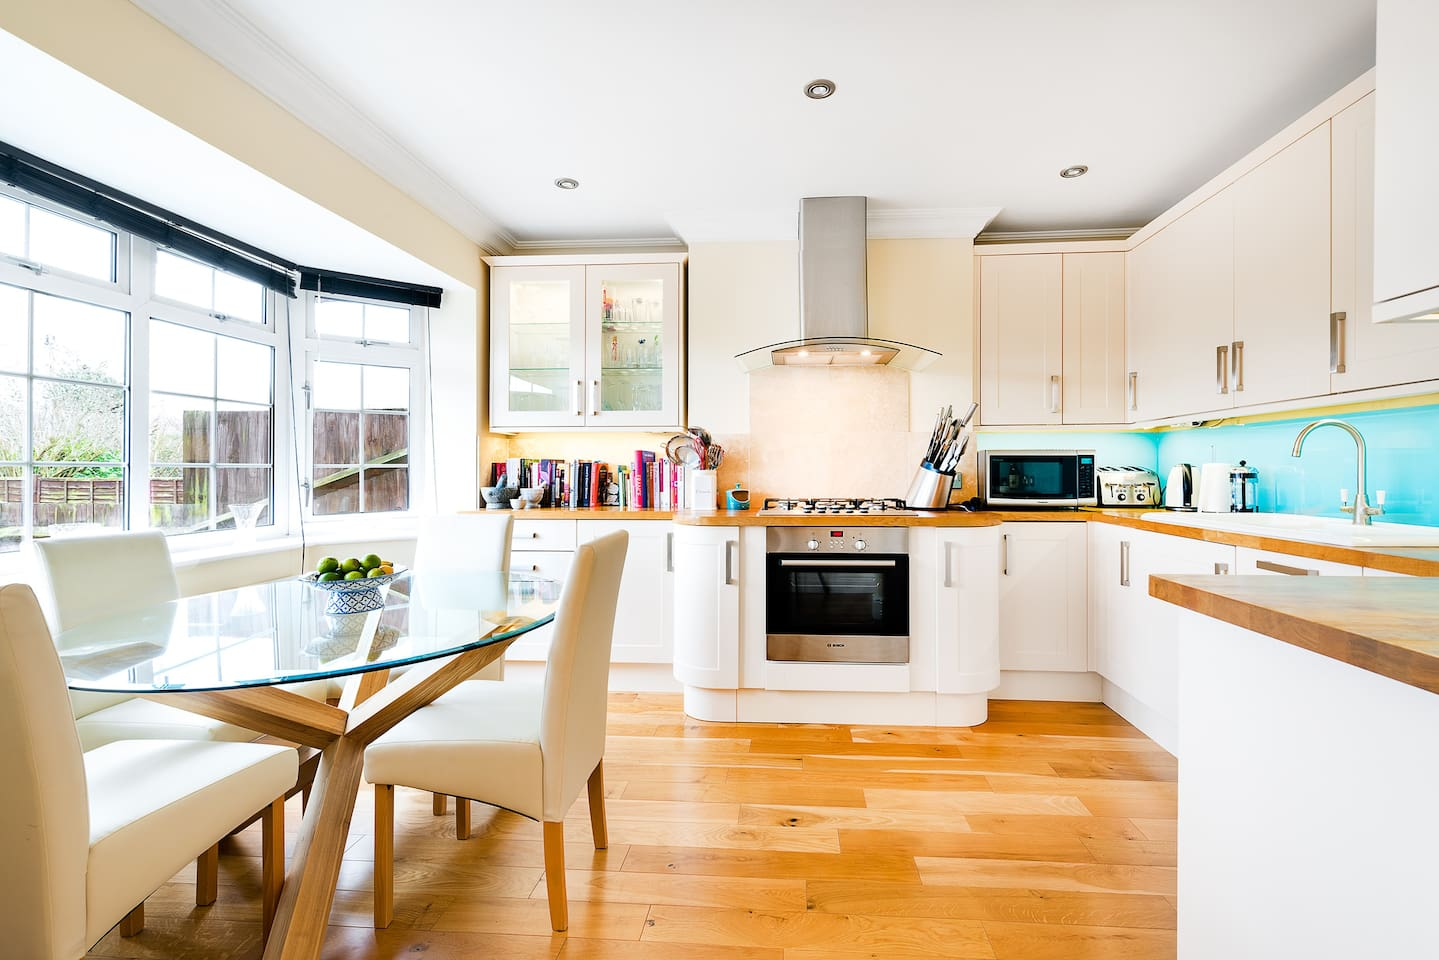 Fully kitchen with views to front of house.